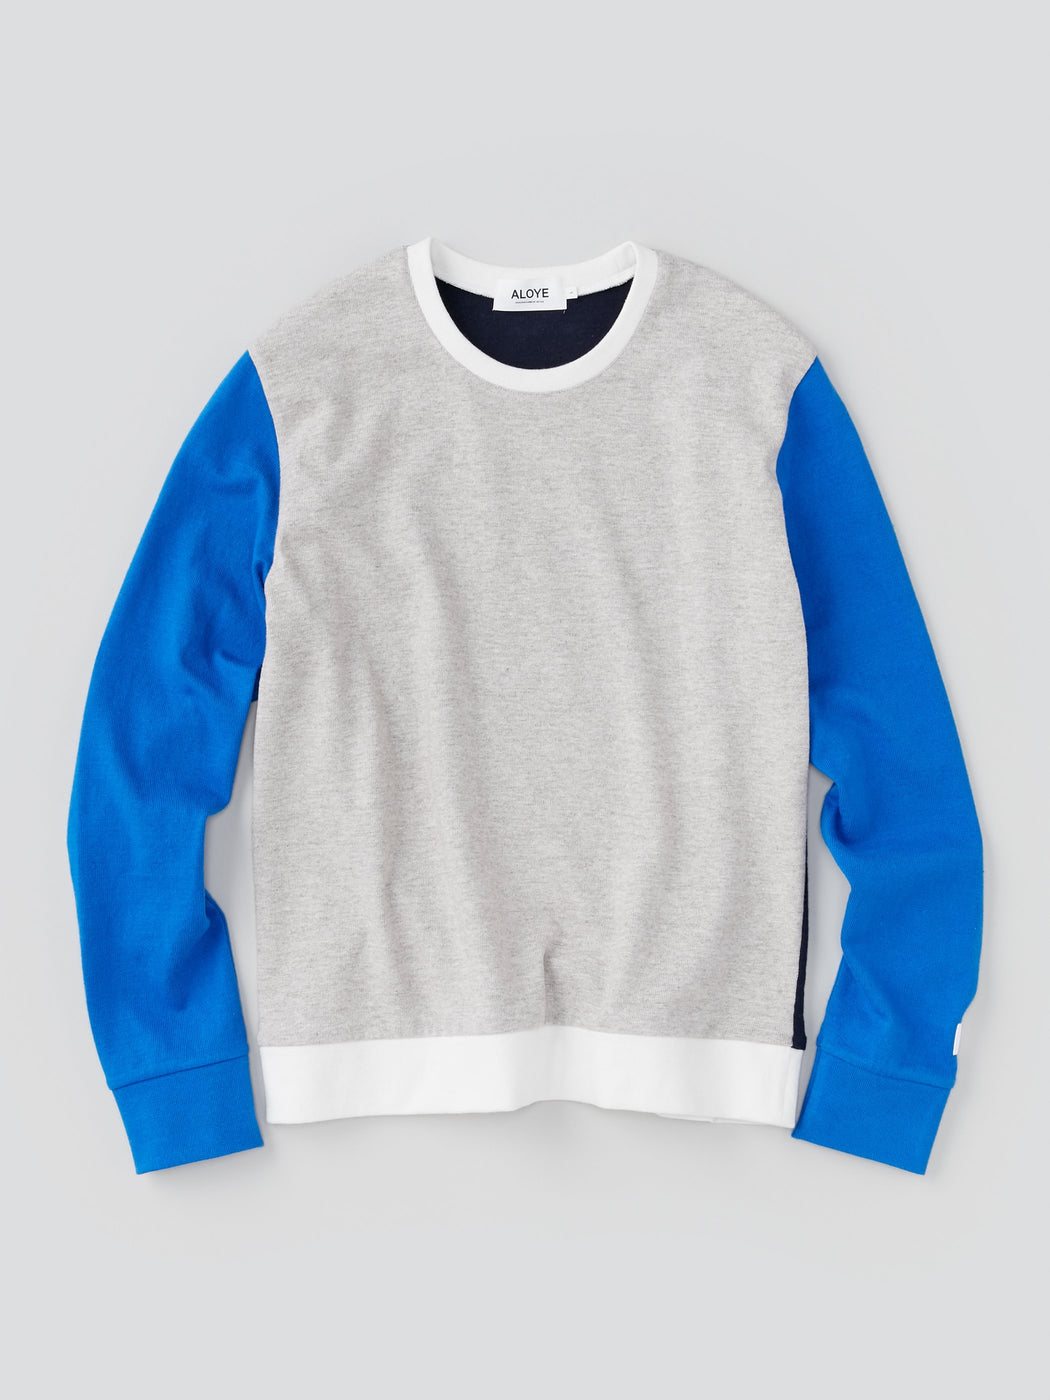 ALOYE G.F.G.S. Men's Cotton Knitted Sweater Heather Gray and Blue